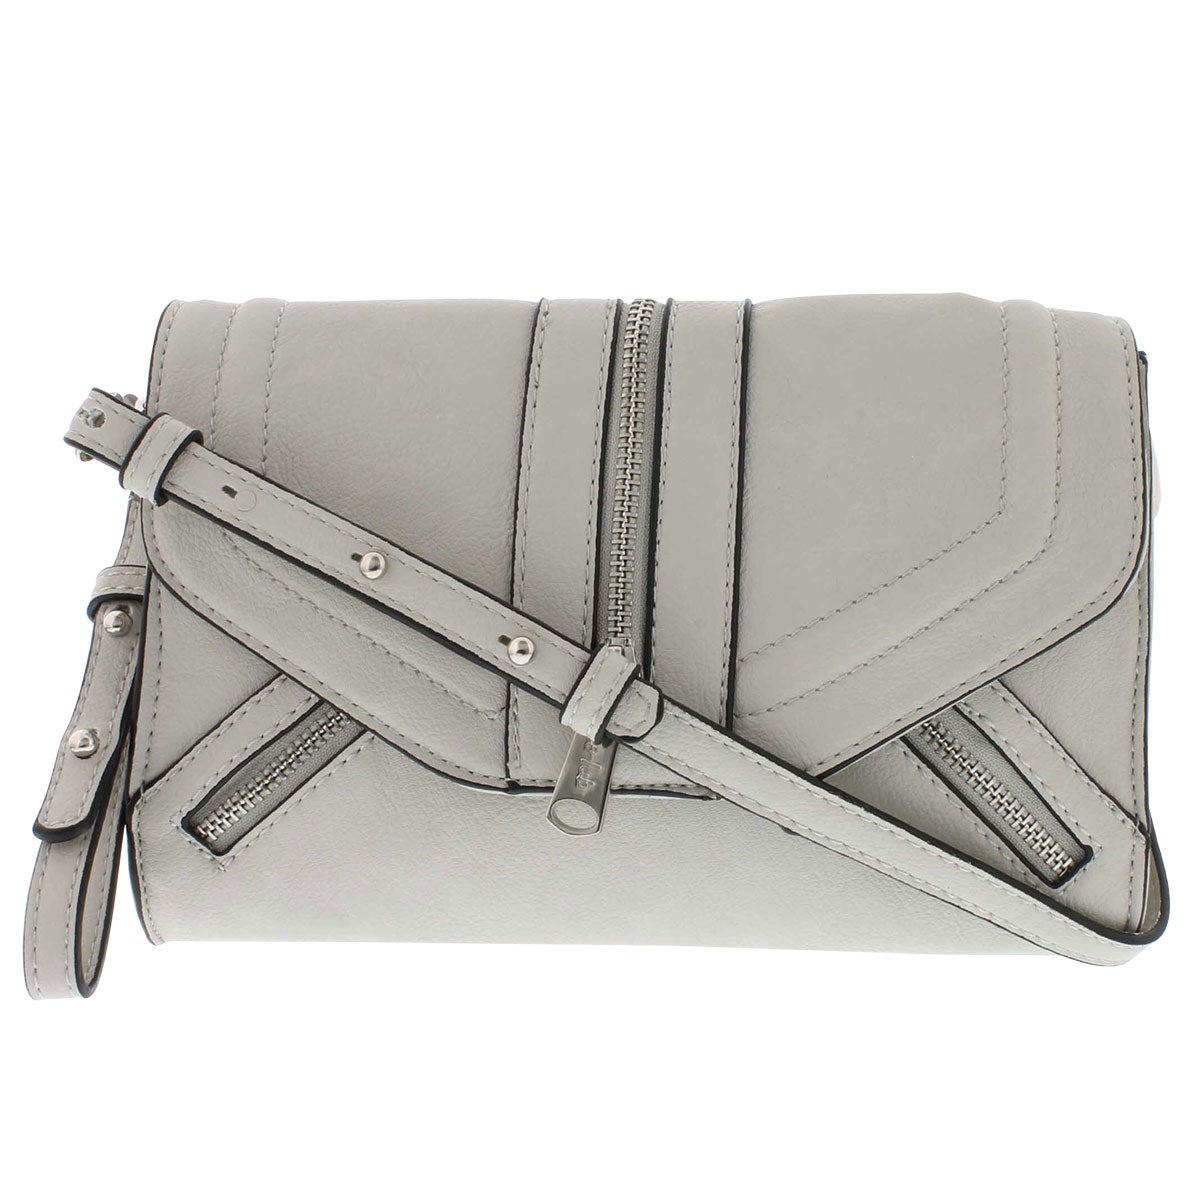 Lds Emma grey 2strap convertible clutch